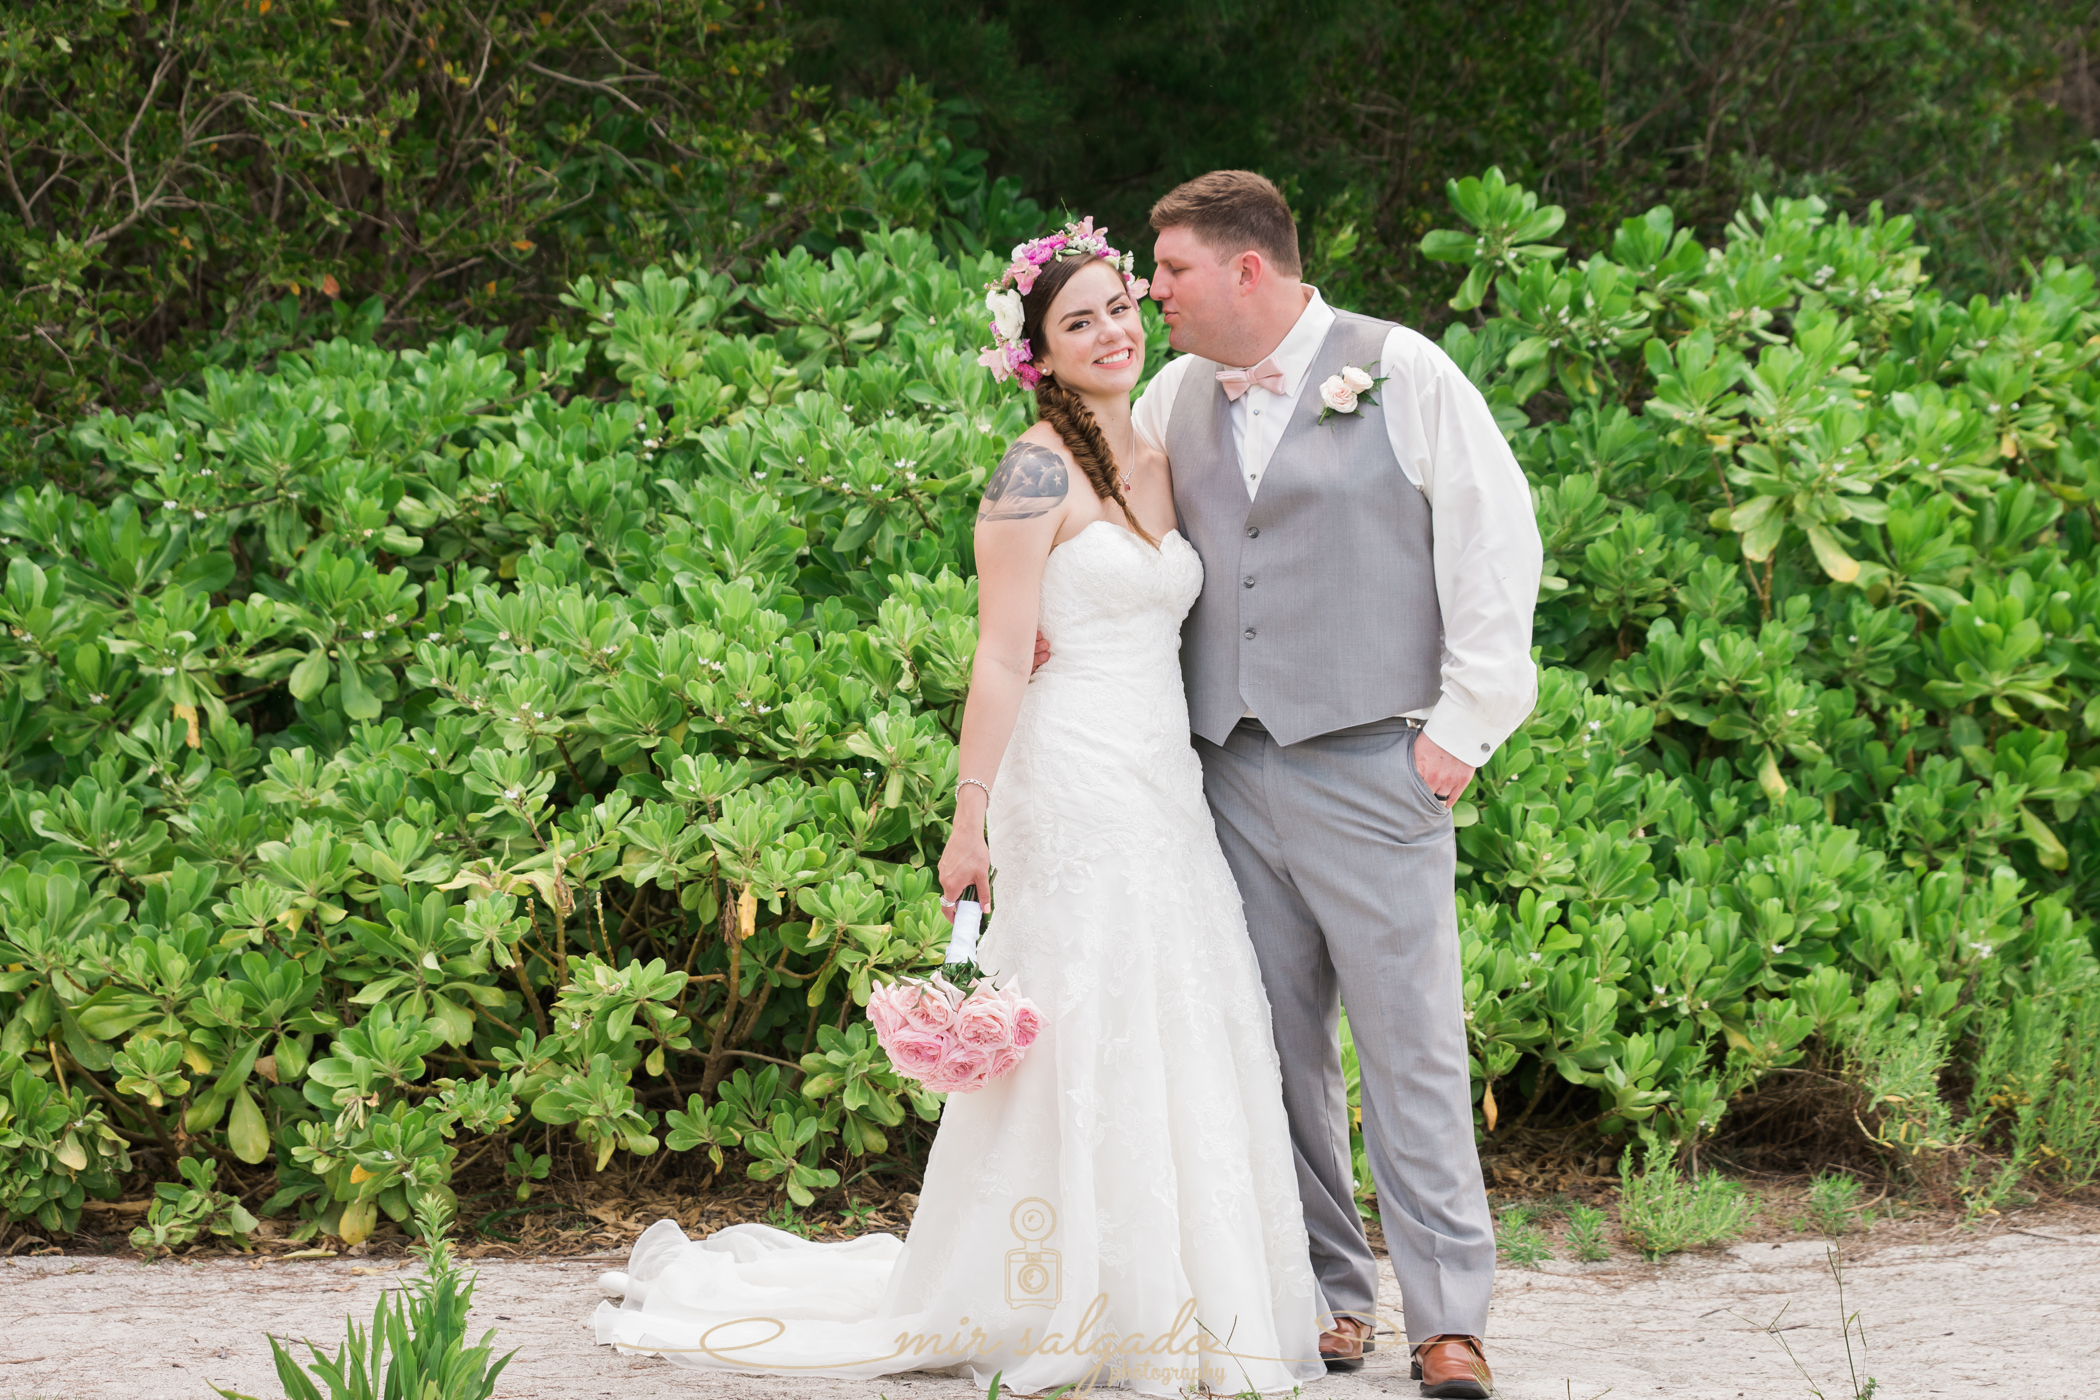 Lido-key-beach-wedding, Sarasota-beach-wedding-photographer